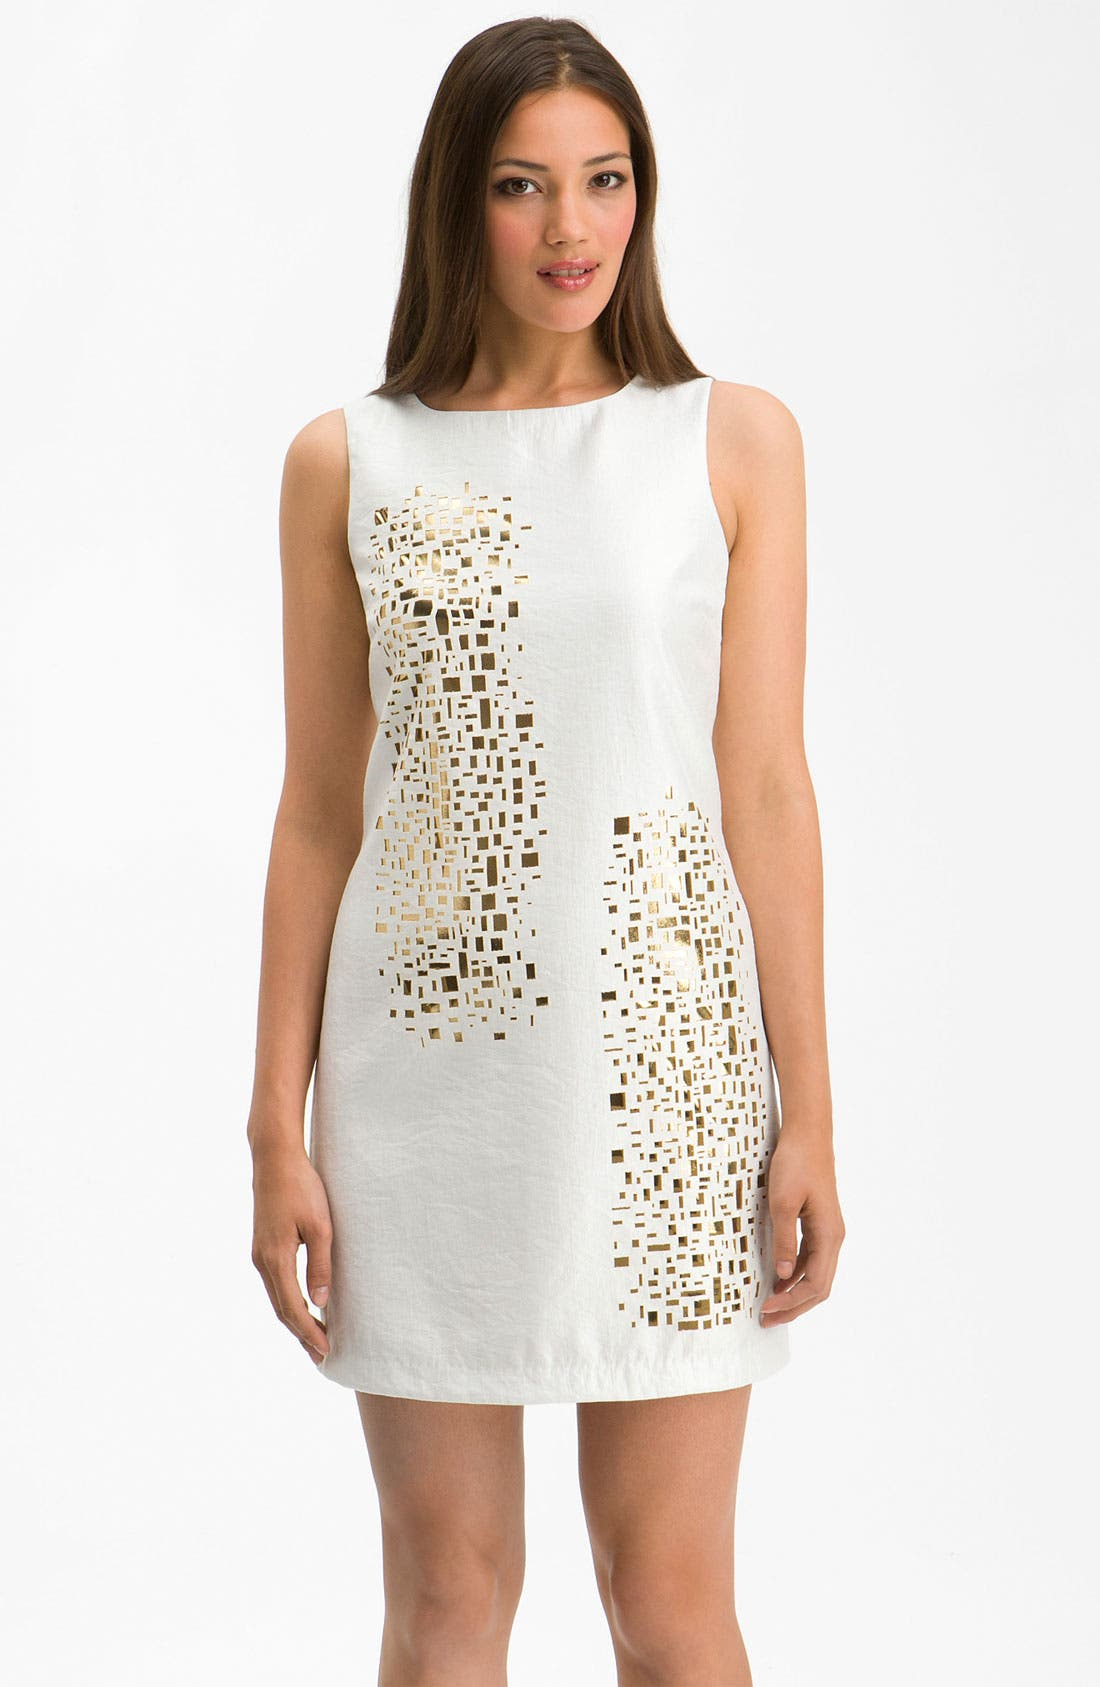 Alternate Image 1 Selected - Alexia Admor 'Mosaic' Cutout Shift Dress